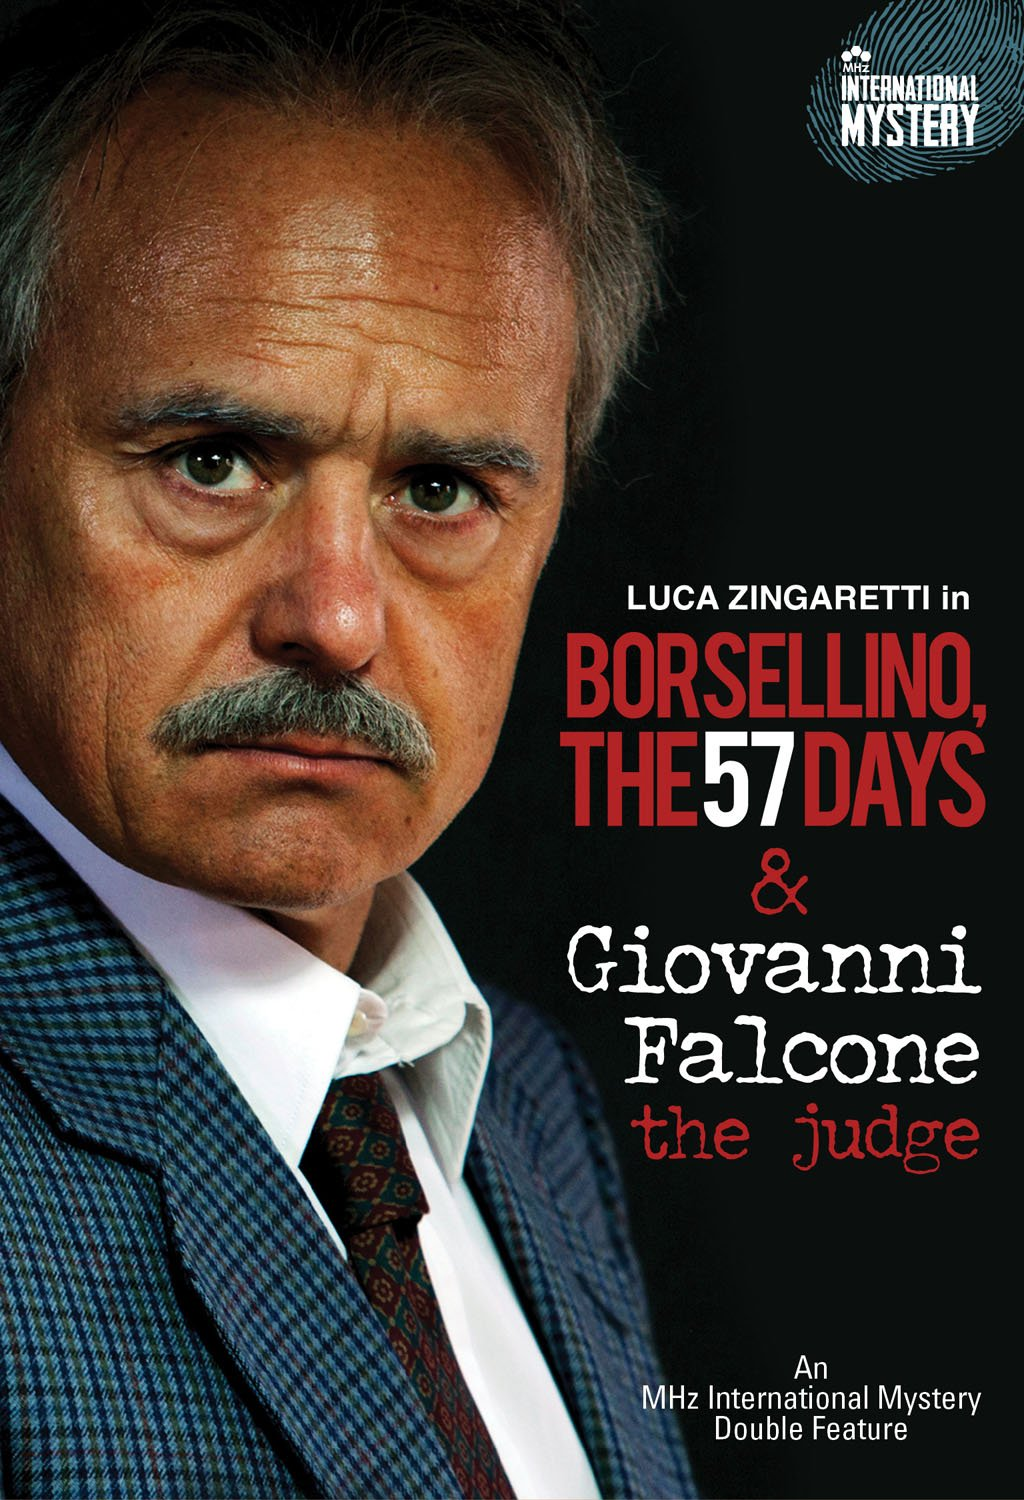 Giovanni Falcone: The Judge & Borsellino: The 57 Days